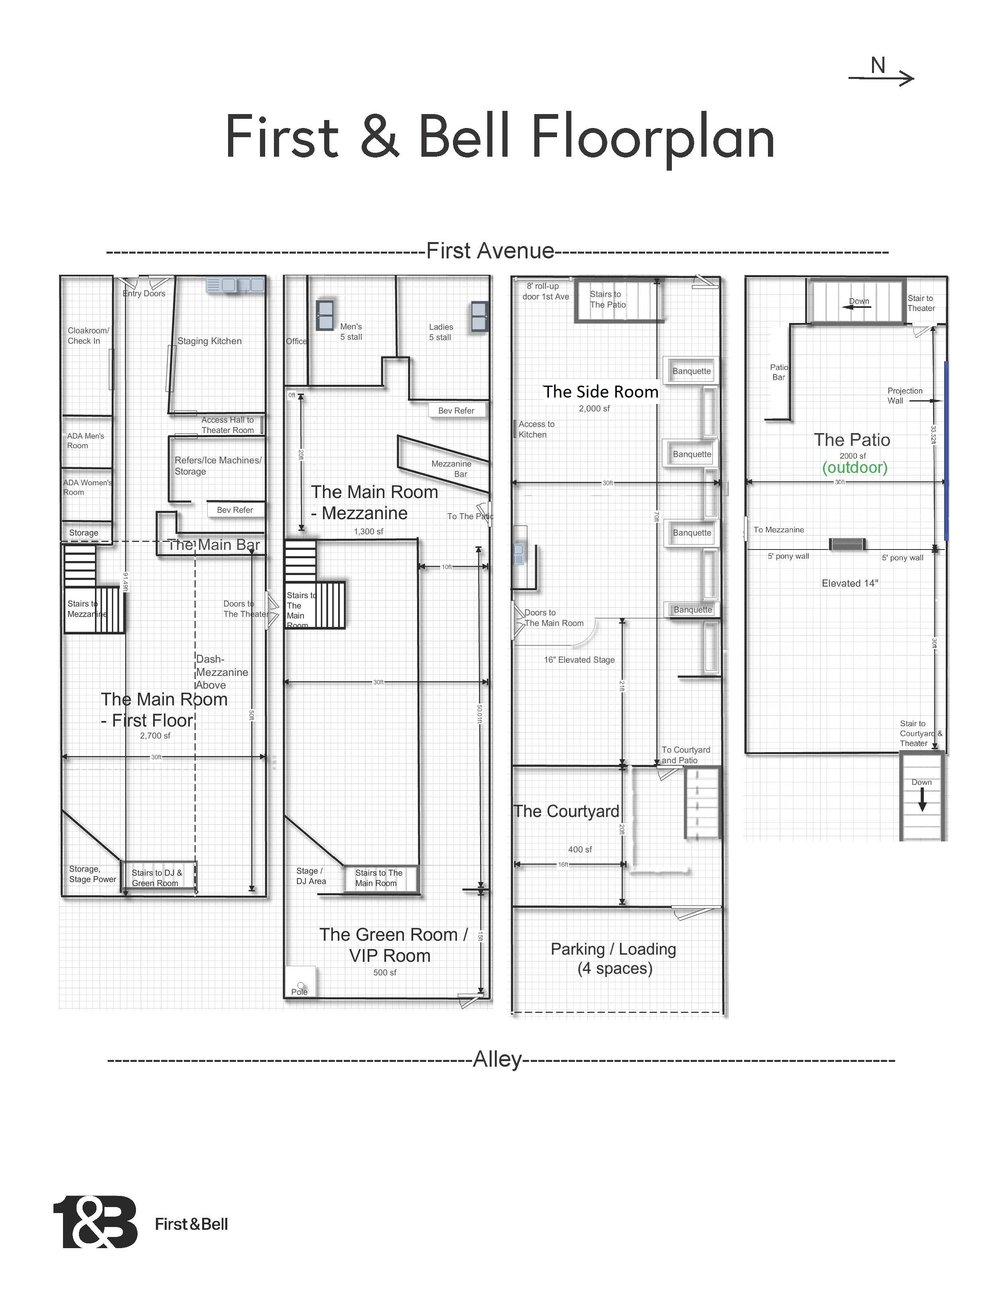 First and Bell Floorplan (all) SideRoom.jpg